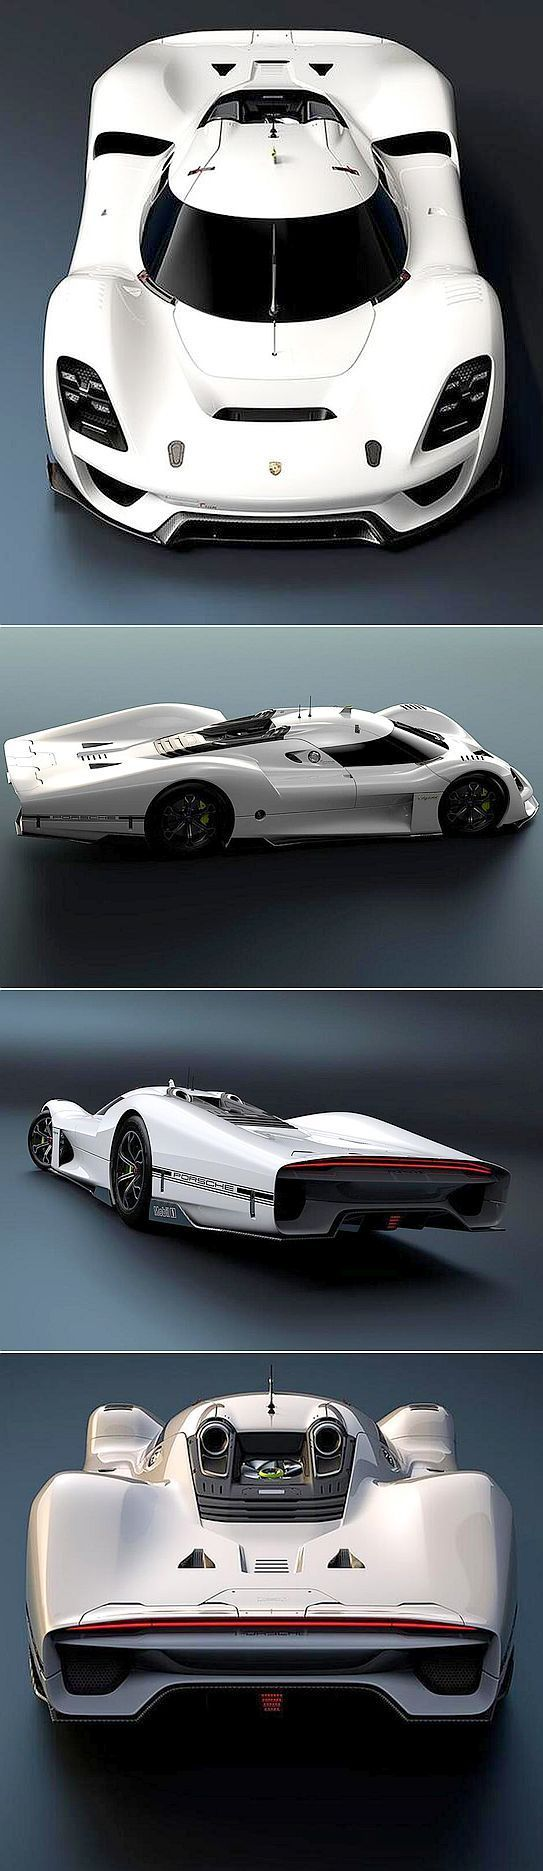 Porsche 908-04 Concept 2016 - based on 918 Spyder, the idea from the legendary… - https://www.luxury.guugles.com/porsche-908-04-concept-2016-based-on-918-spyder-the-idea-from-the-legendary/